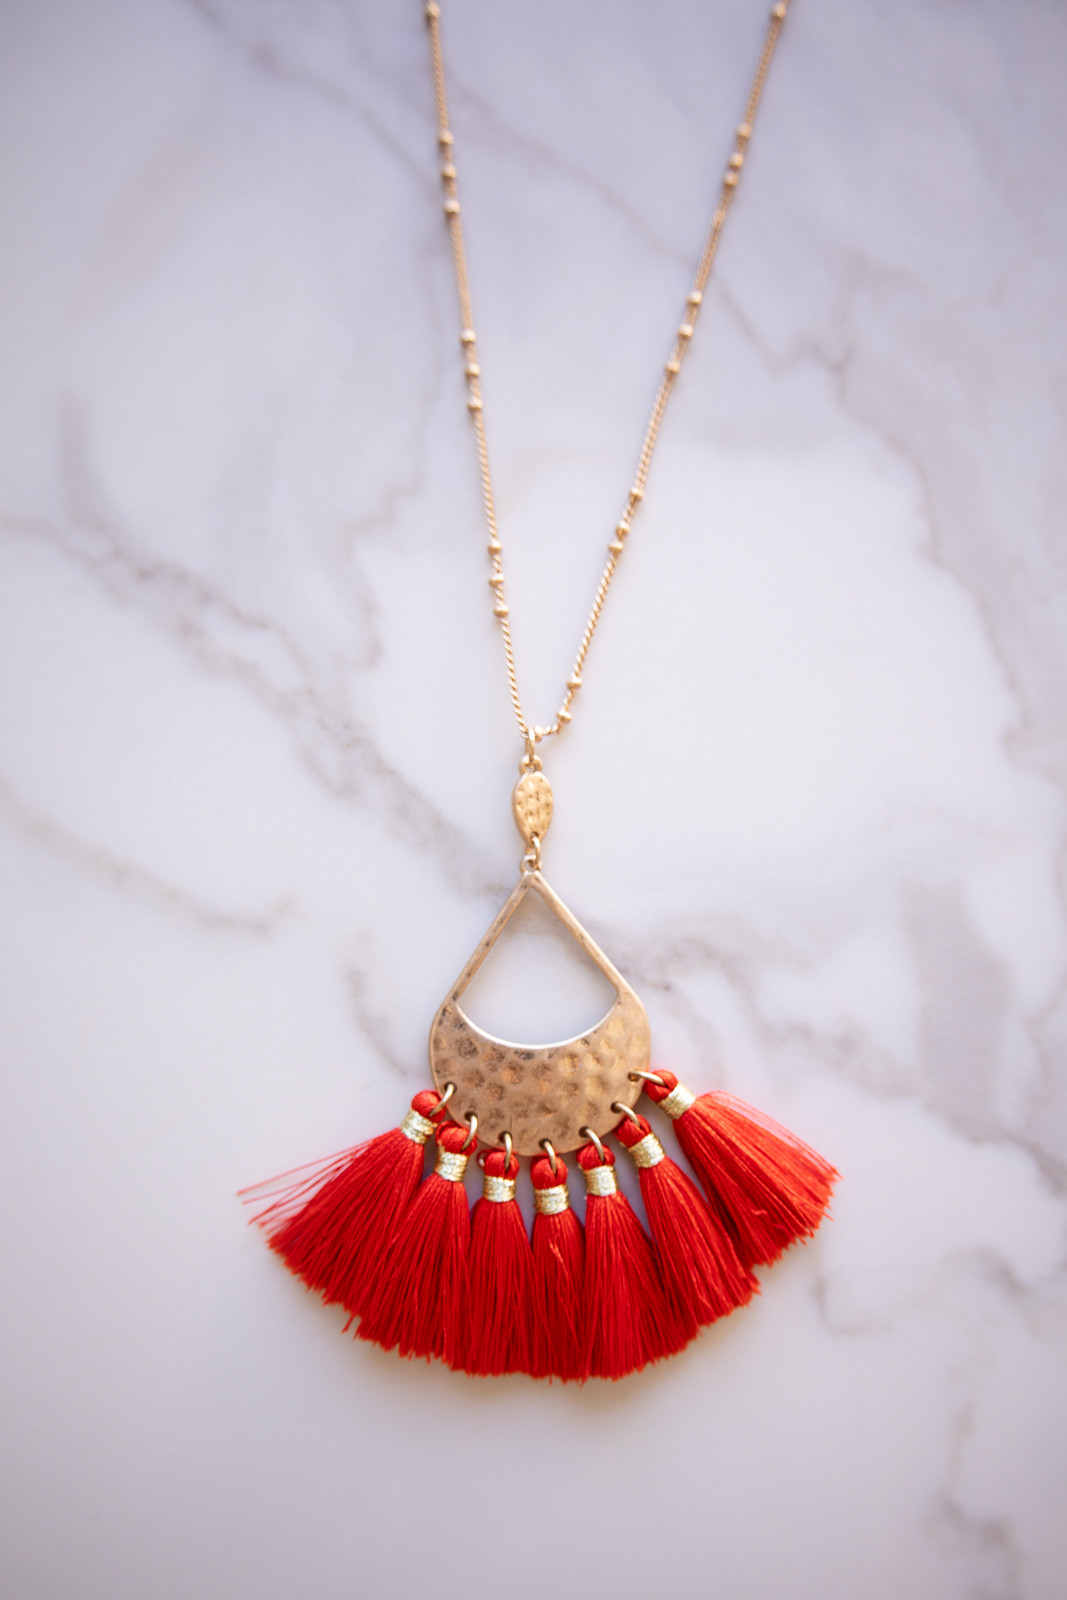 Gold Long Chain Necklace with Lipstick Red Tassel Pendant